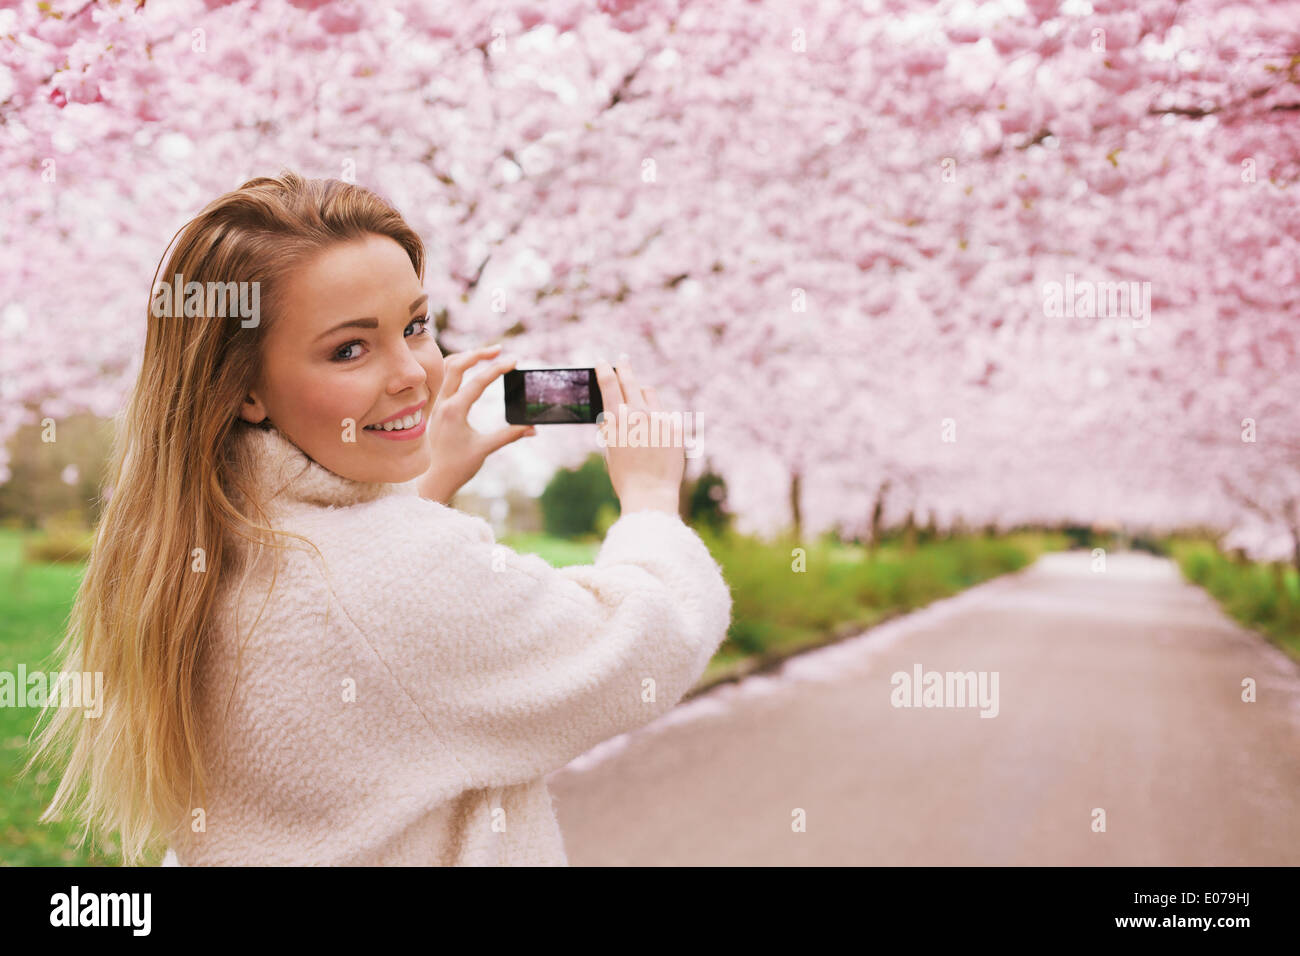 Young woman using her smartphone to capture images of the path and cherry blossoms tree at park, Young female looking at camera. - Stock Image